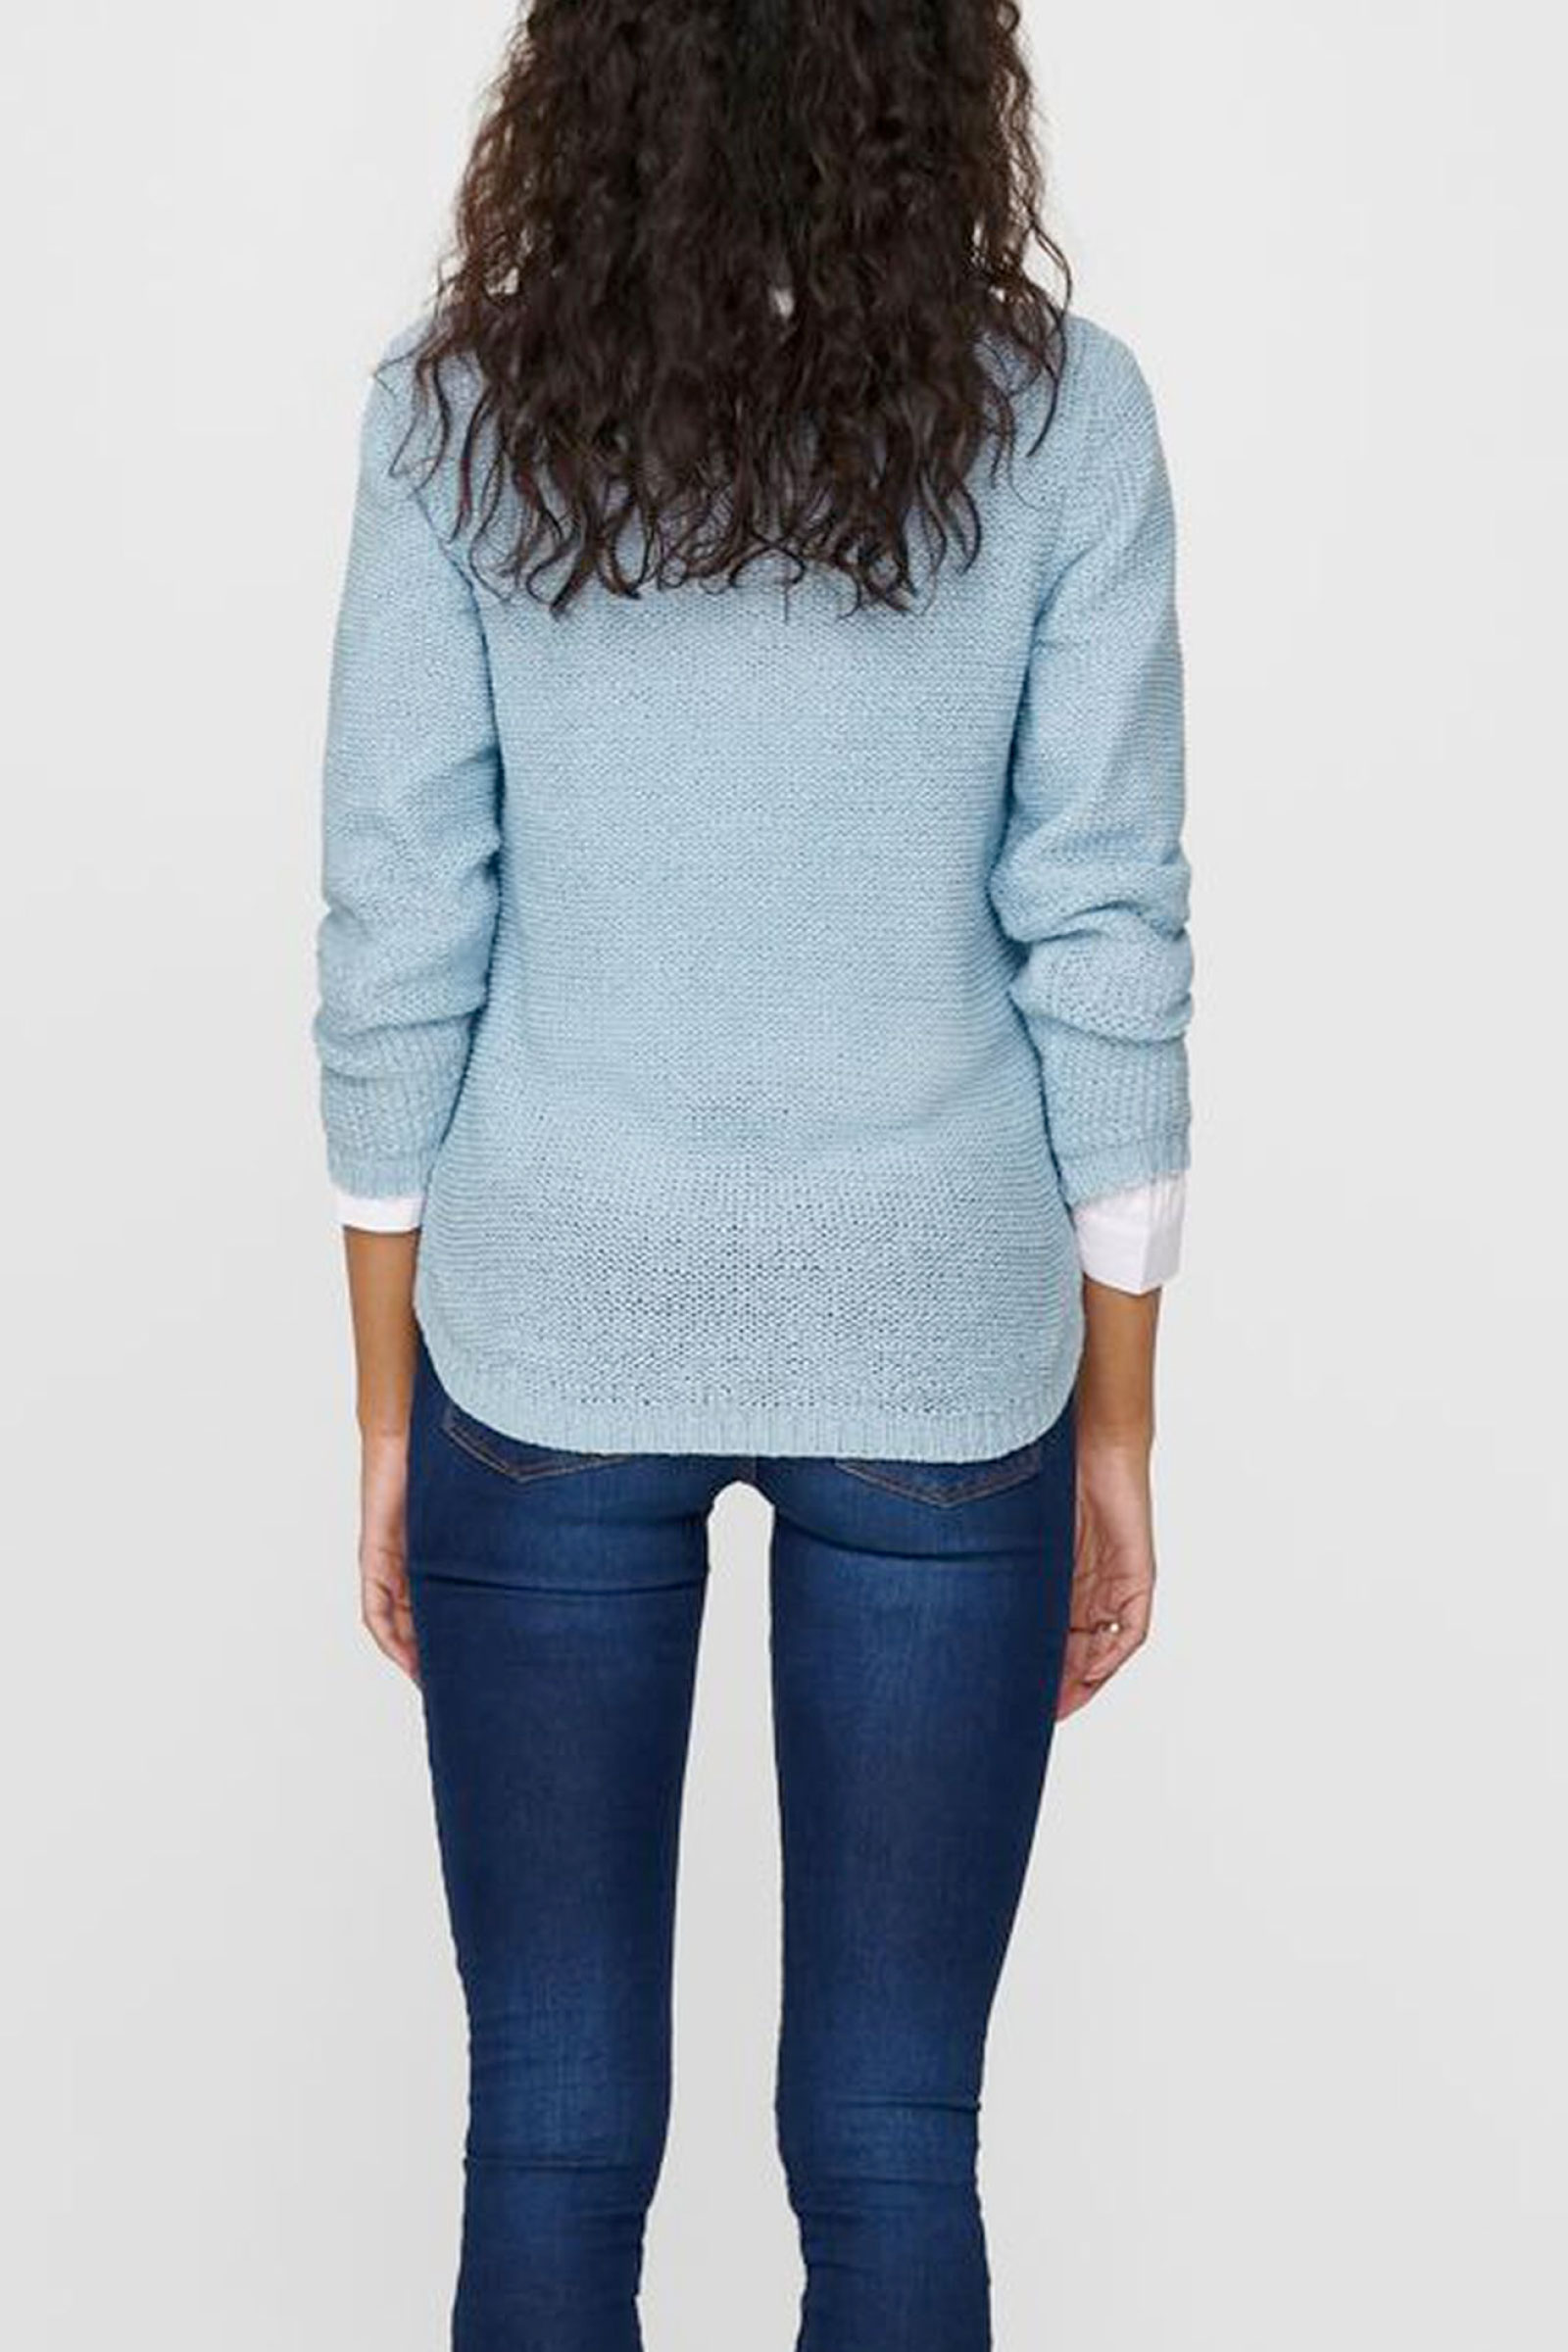 ONLY GEENA Woman Shirt ONLY   Mesh   15113356CASHMERE BLUE